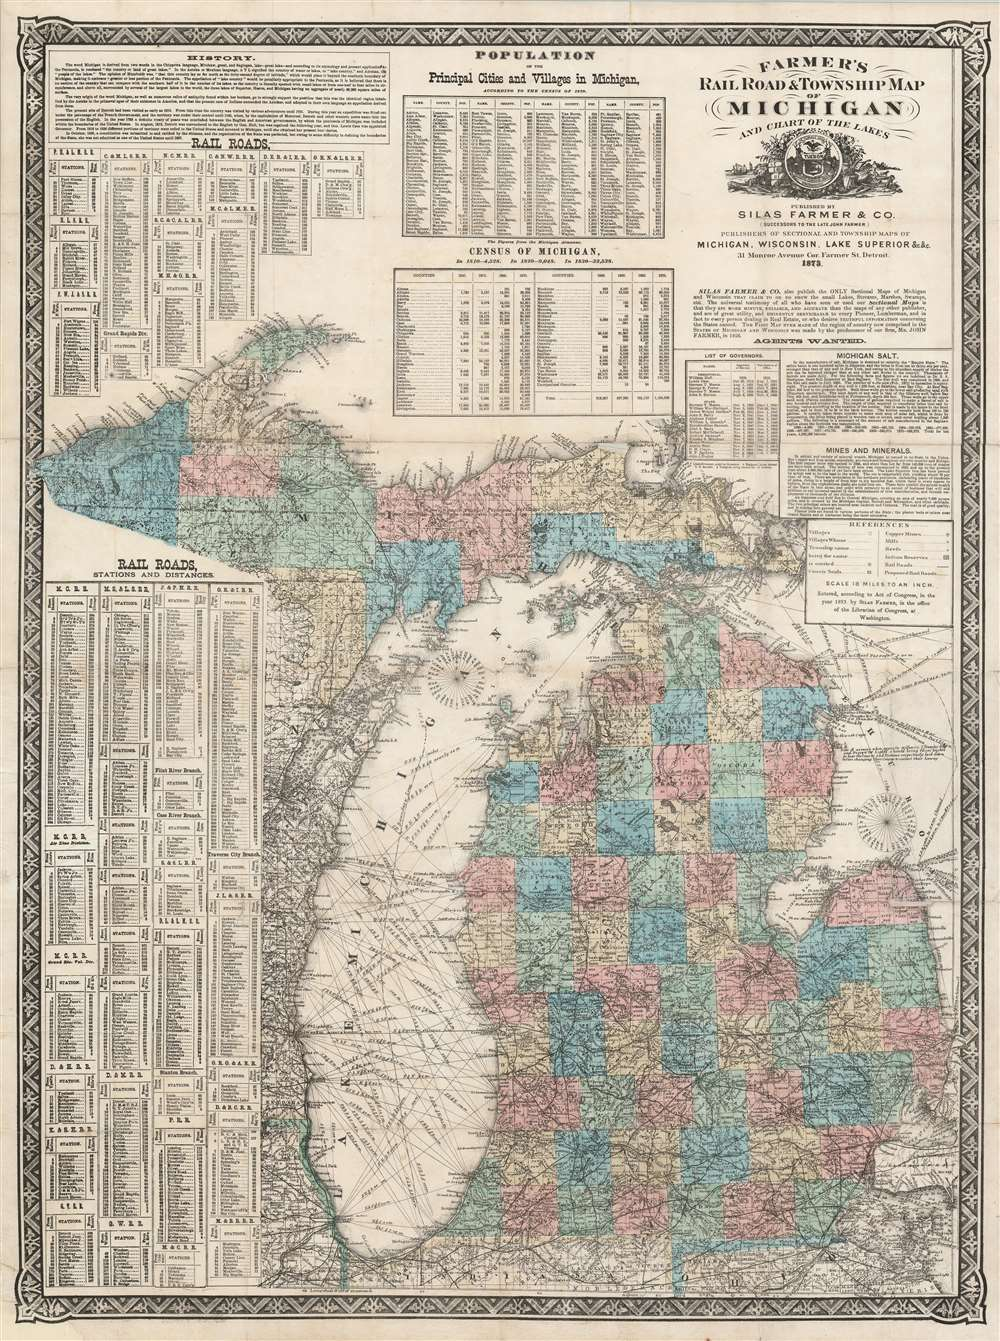 Farmer's Railroad and Township Map of Michigan and Chart of the Lakes. - Main View